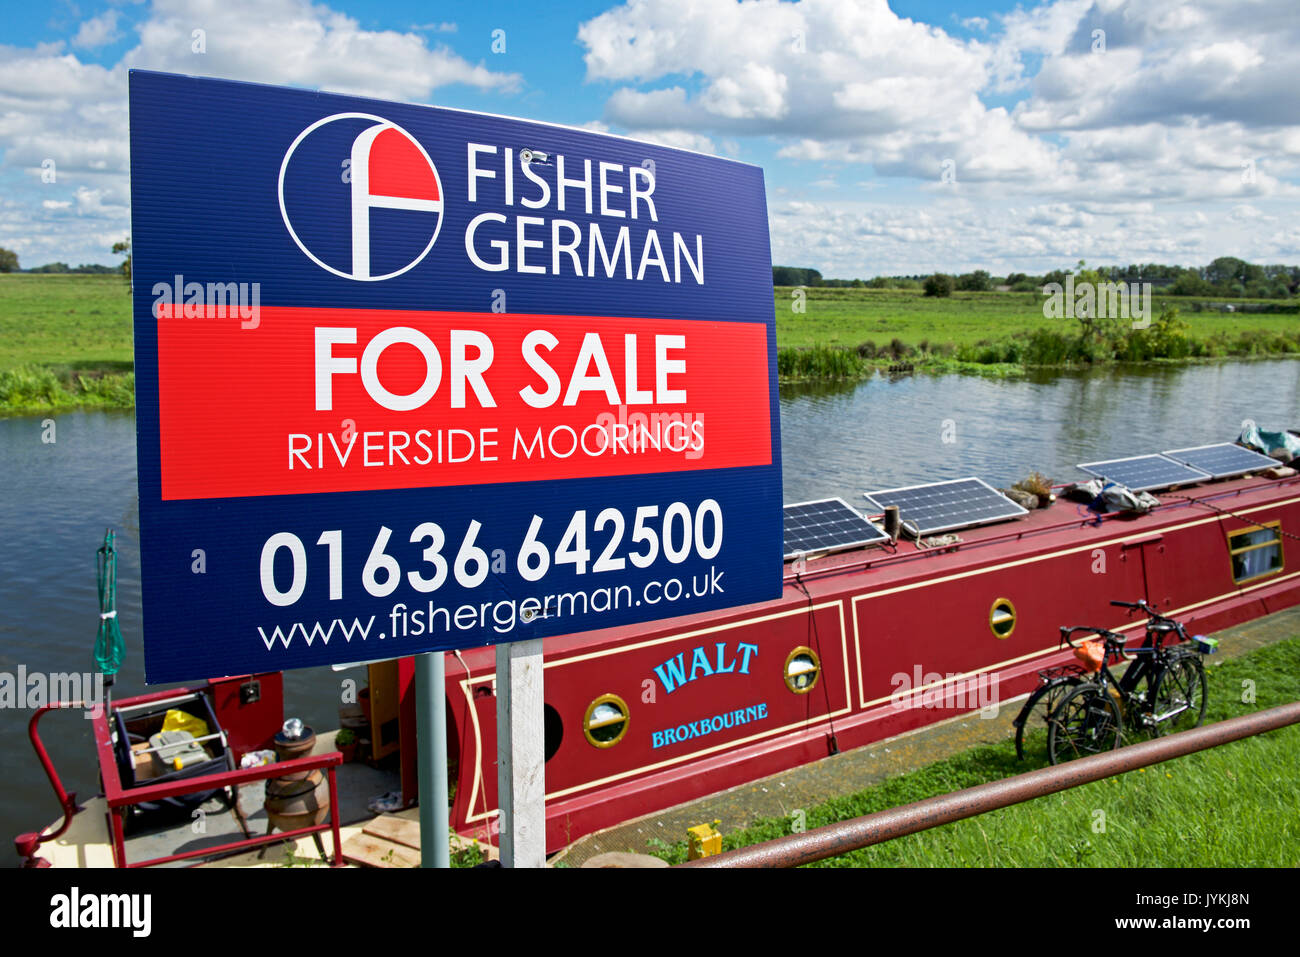 Sign, riverside moorings for sale, Ely, Cambridgeshire, England UK - Stock Image